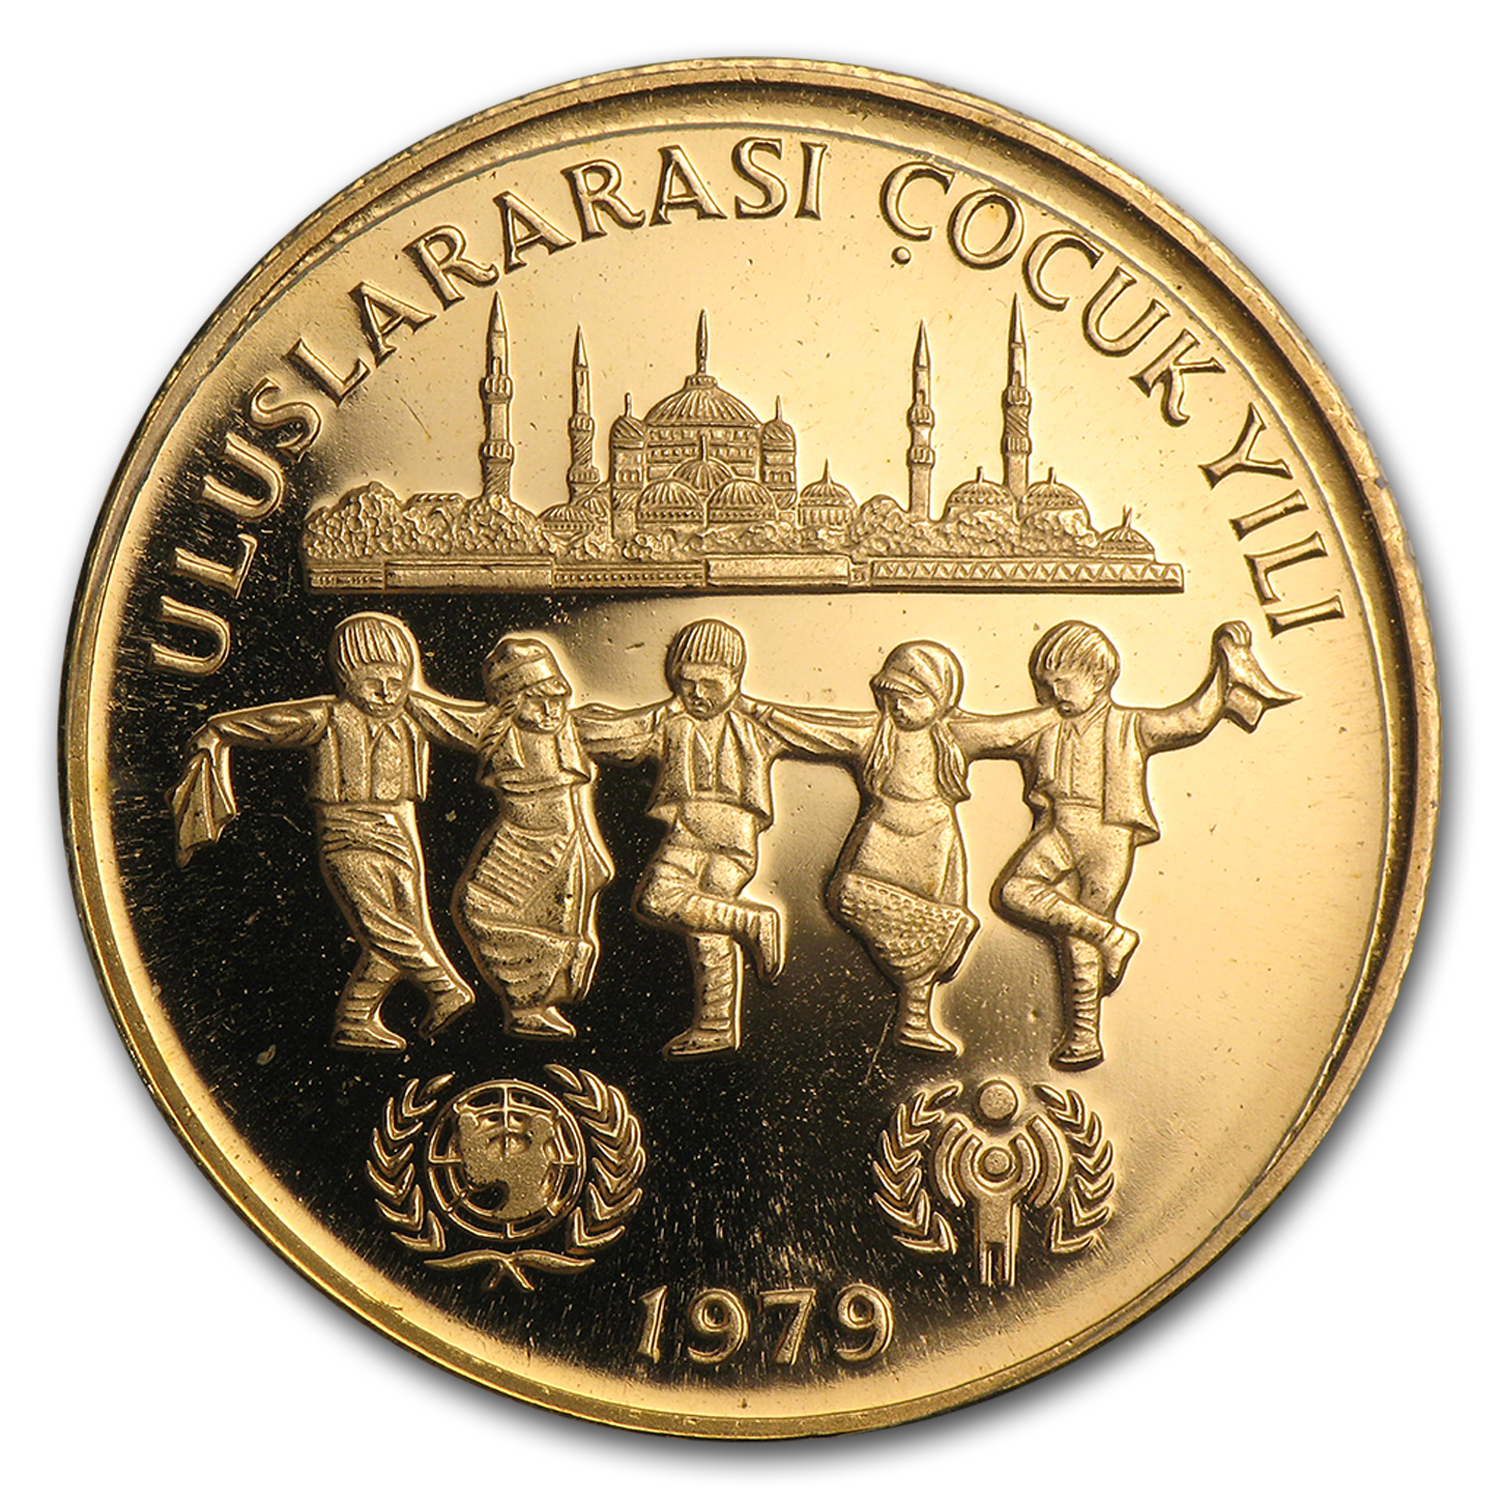 1979 Turkey Proof Gold 10,000 Lira UNICEF and IYC